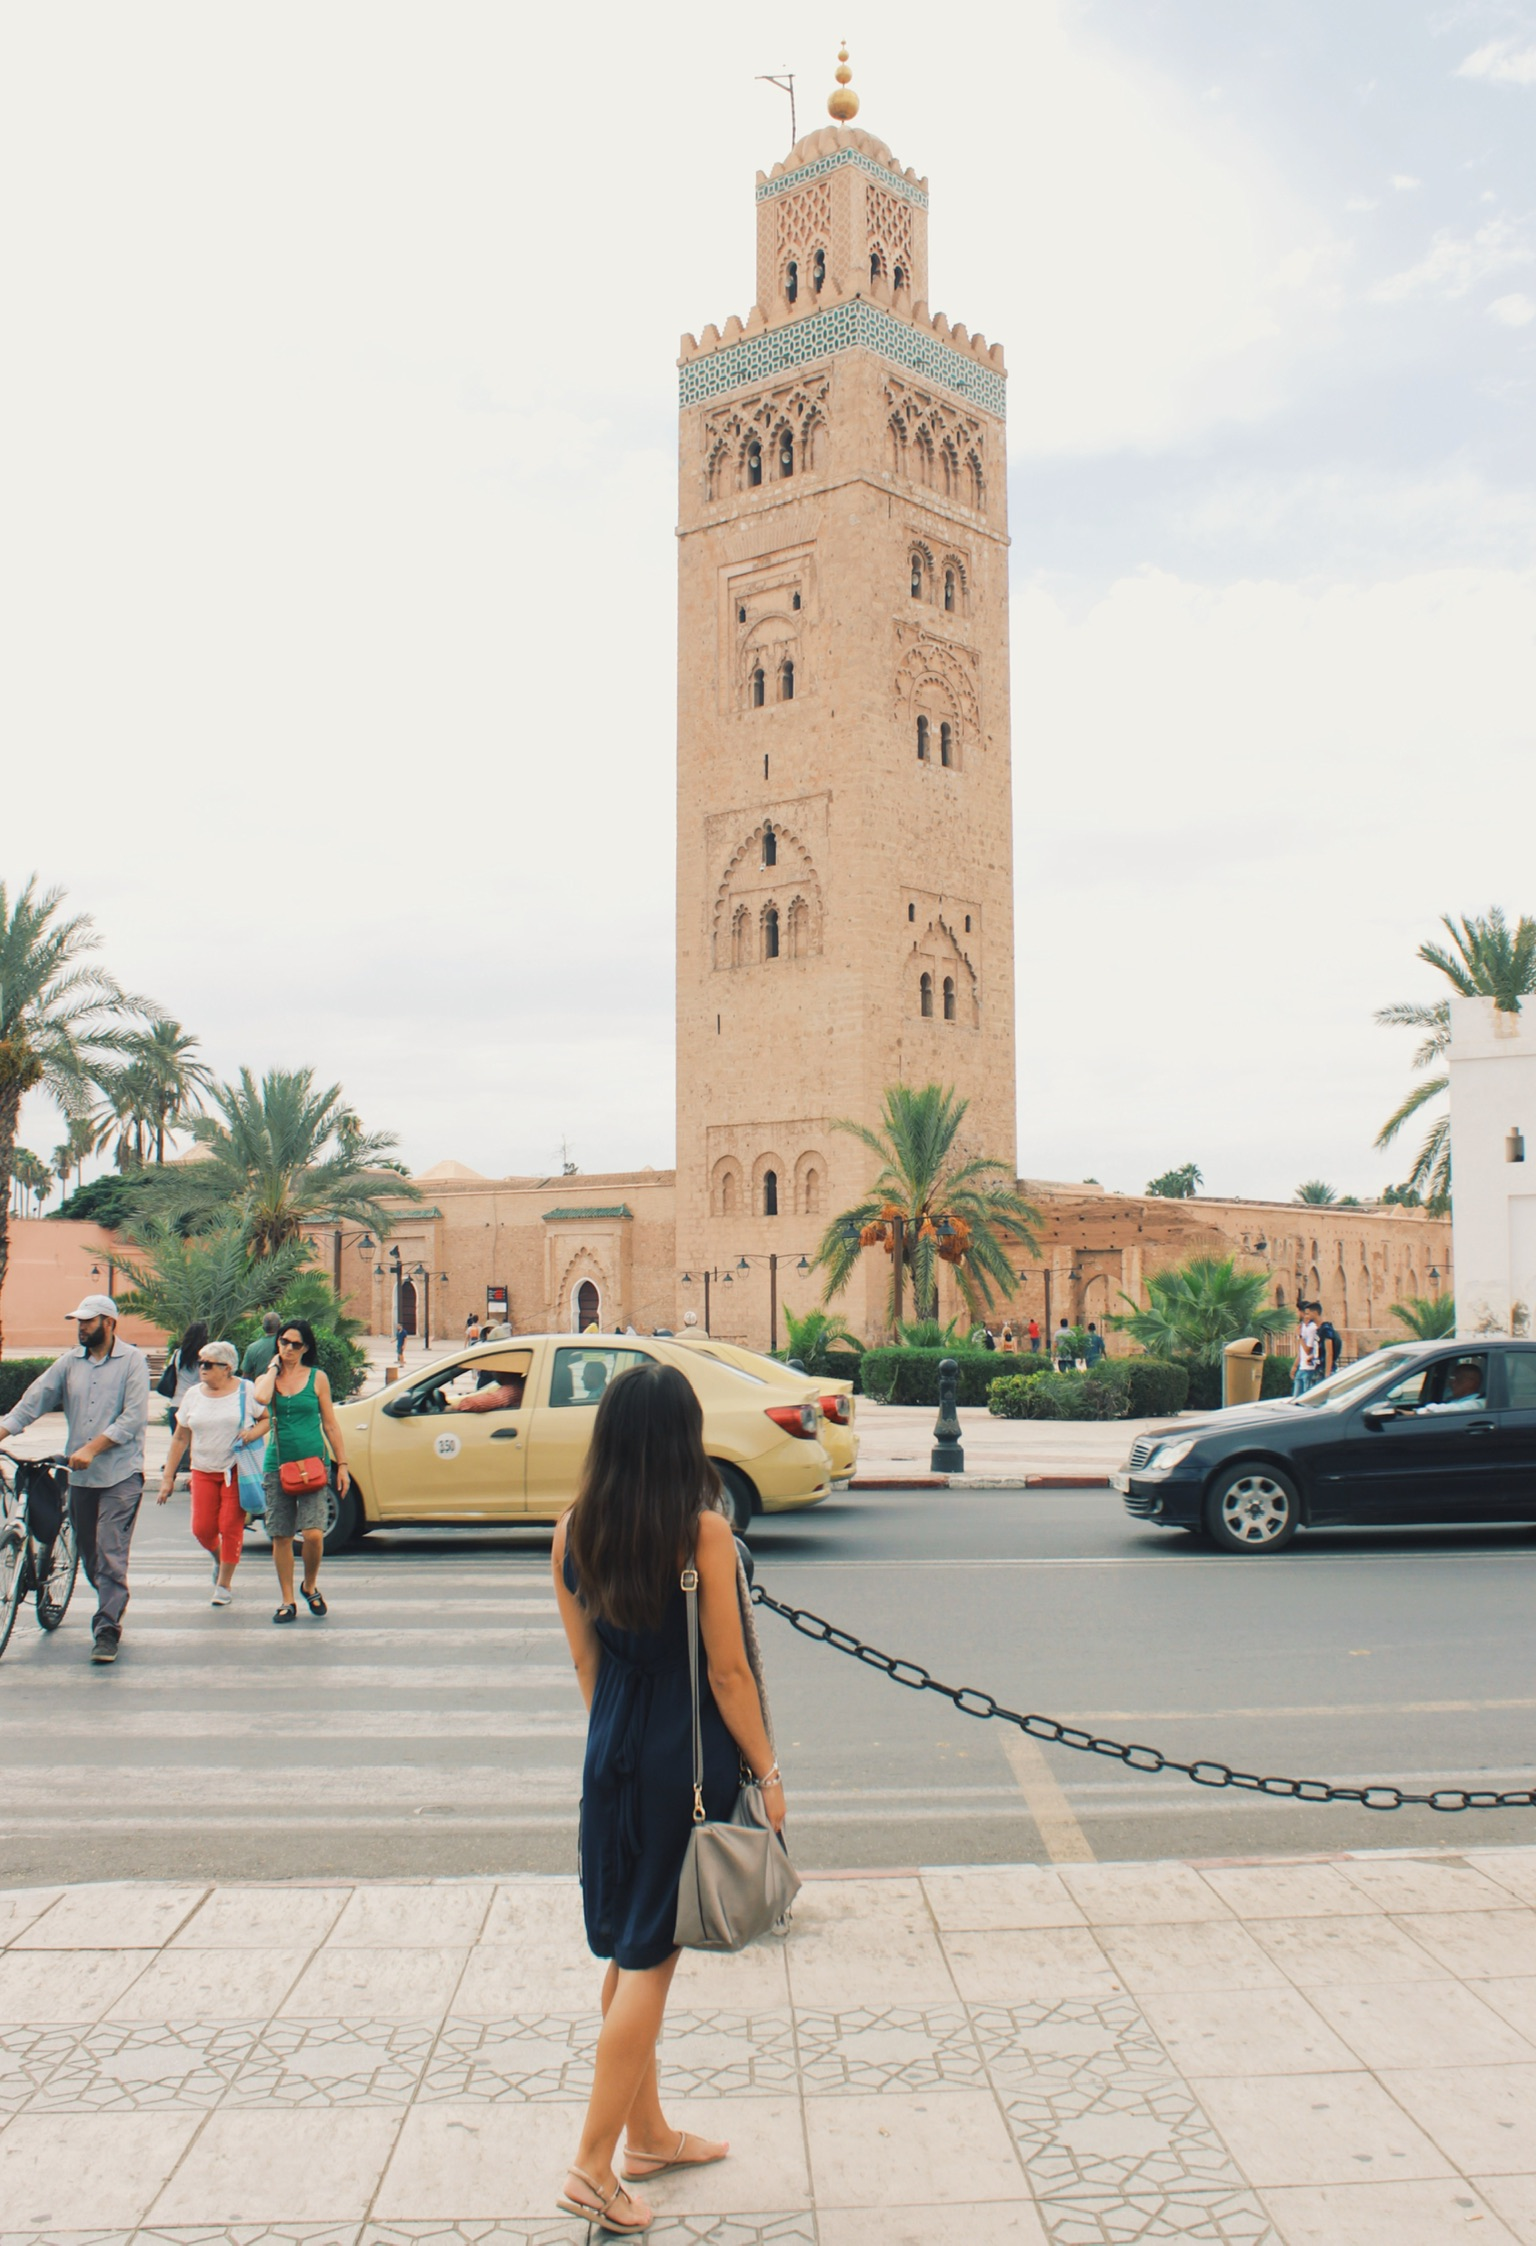 Morocco, the realization of an ancient dream